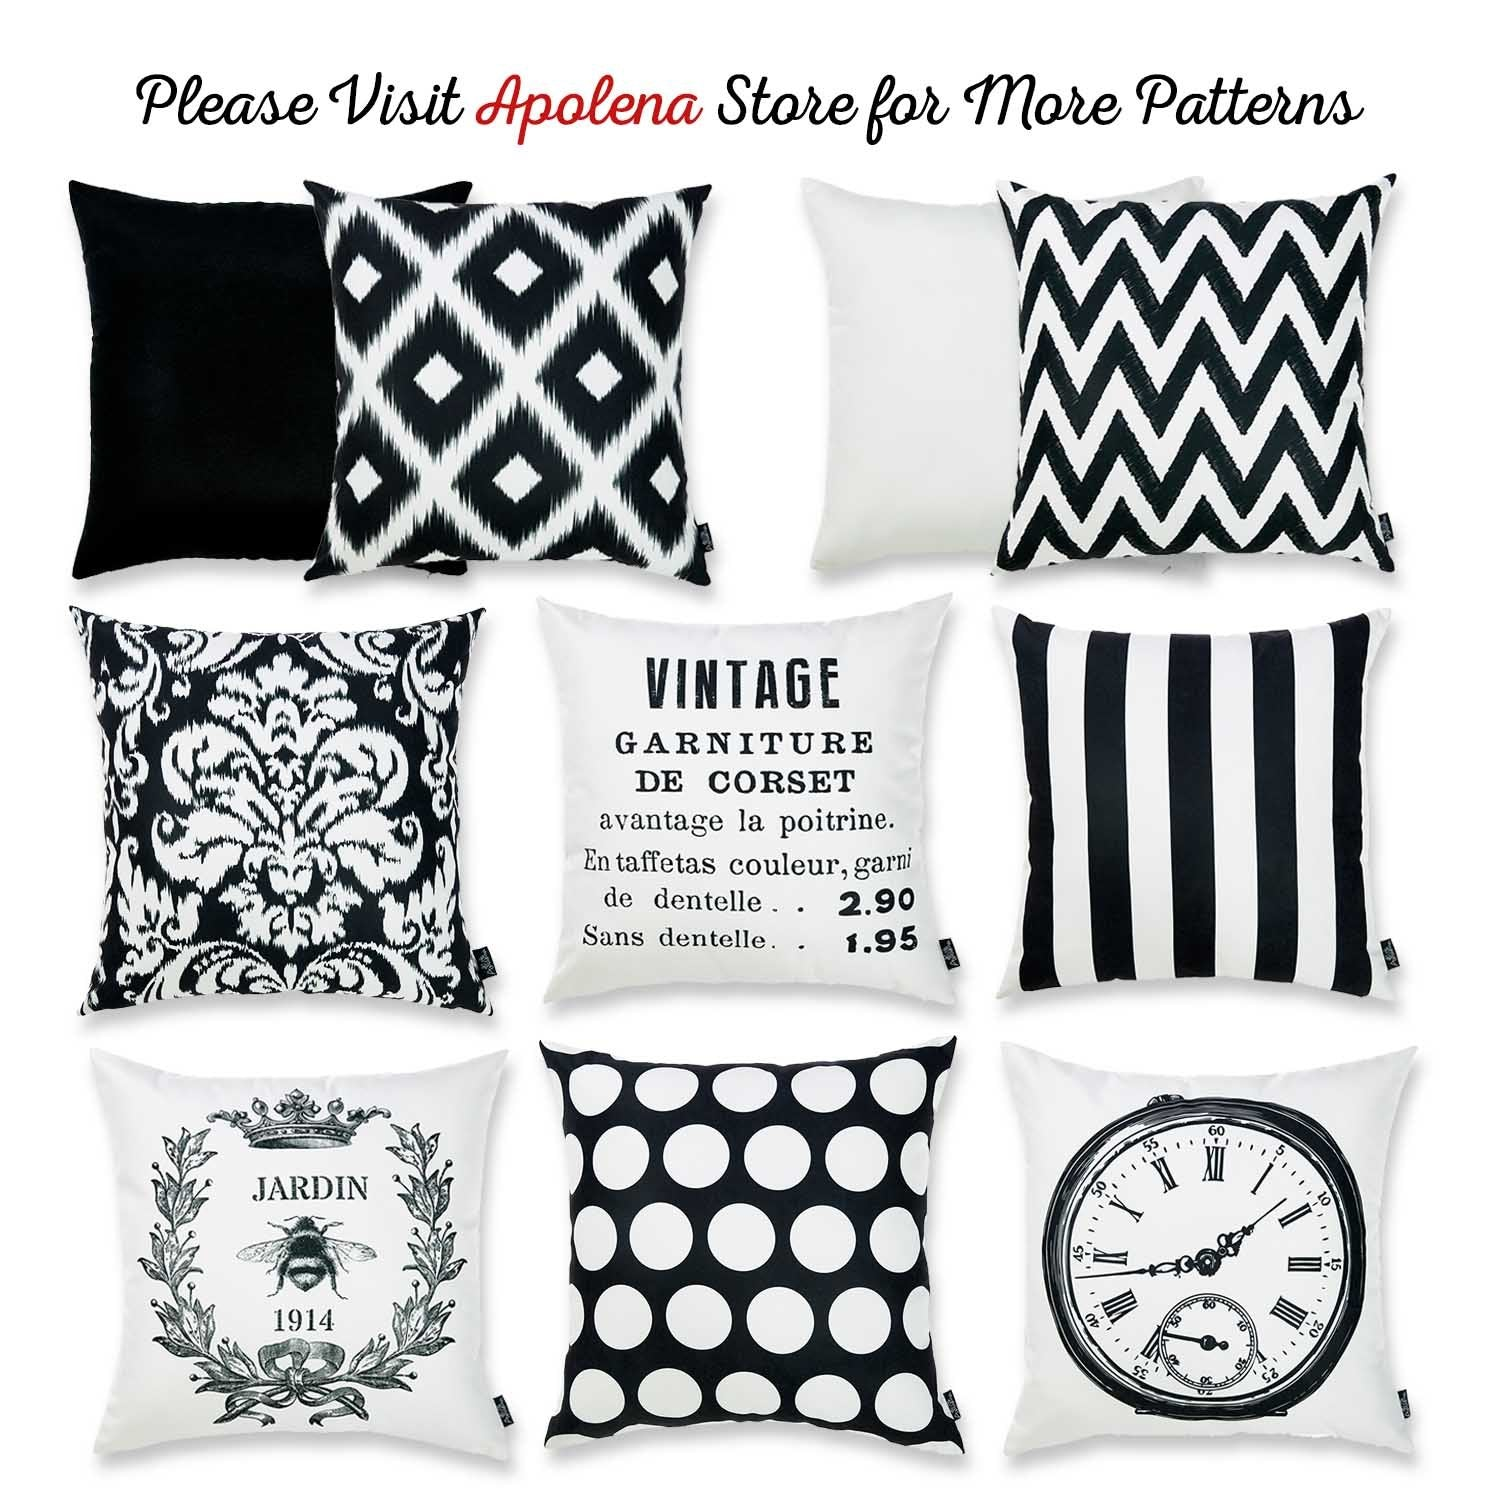 Admirable Black And White Vintage Decorative Throw Pillow Cover Home Decor 18X 18 Uwap Interior Chair Design Uwaporg